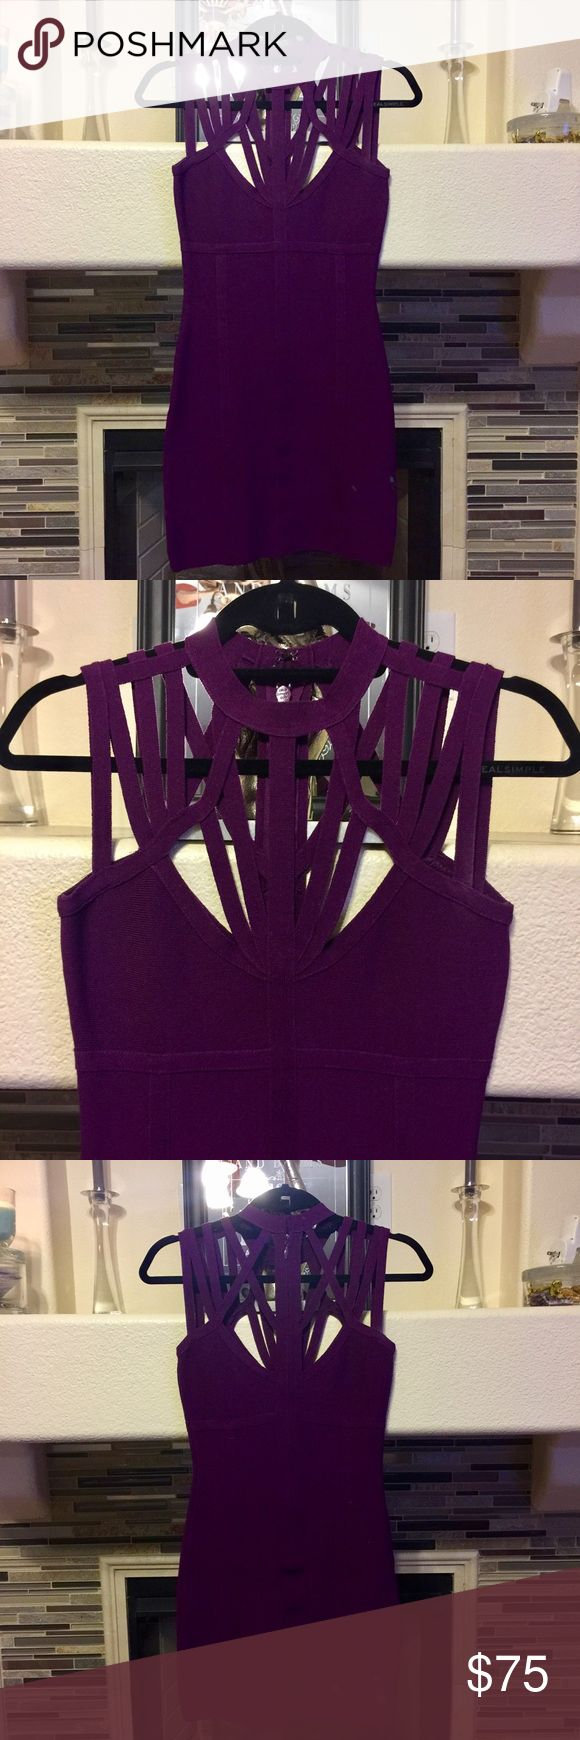 🎉SALE Bebe Strappy Purple Bandage Dress LIKE NEW! Gorgeous purple bandage dress from Bebe, Strappy design on the neck & shoulder area. Zips up the back. Worn once for a couple of hours only and in EXCELLENT condition, LIKE NEW basically! bebe Dresses Mini